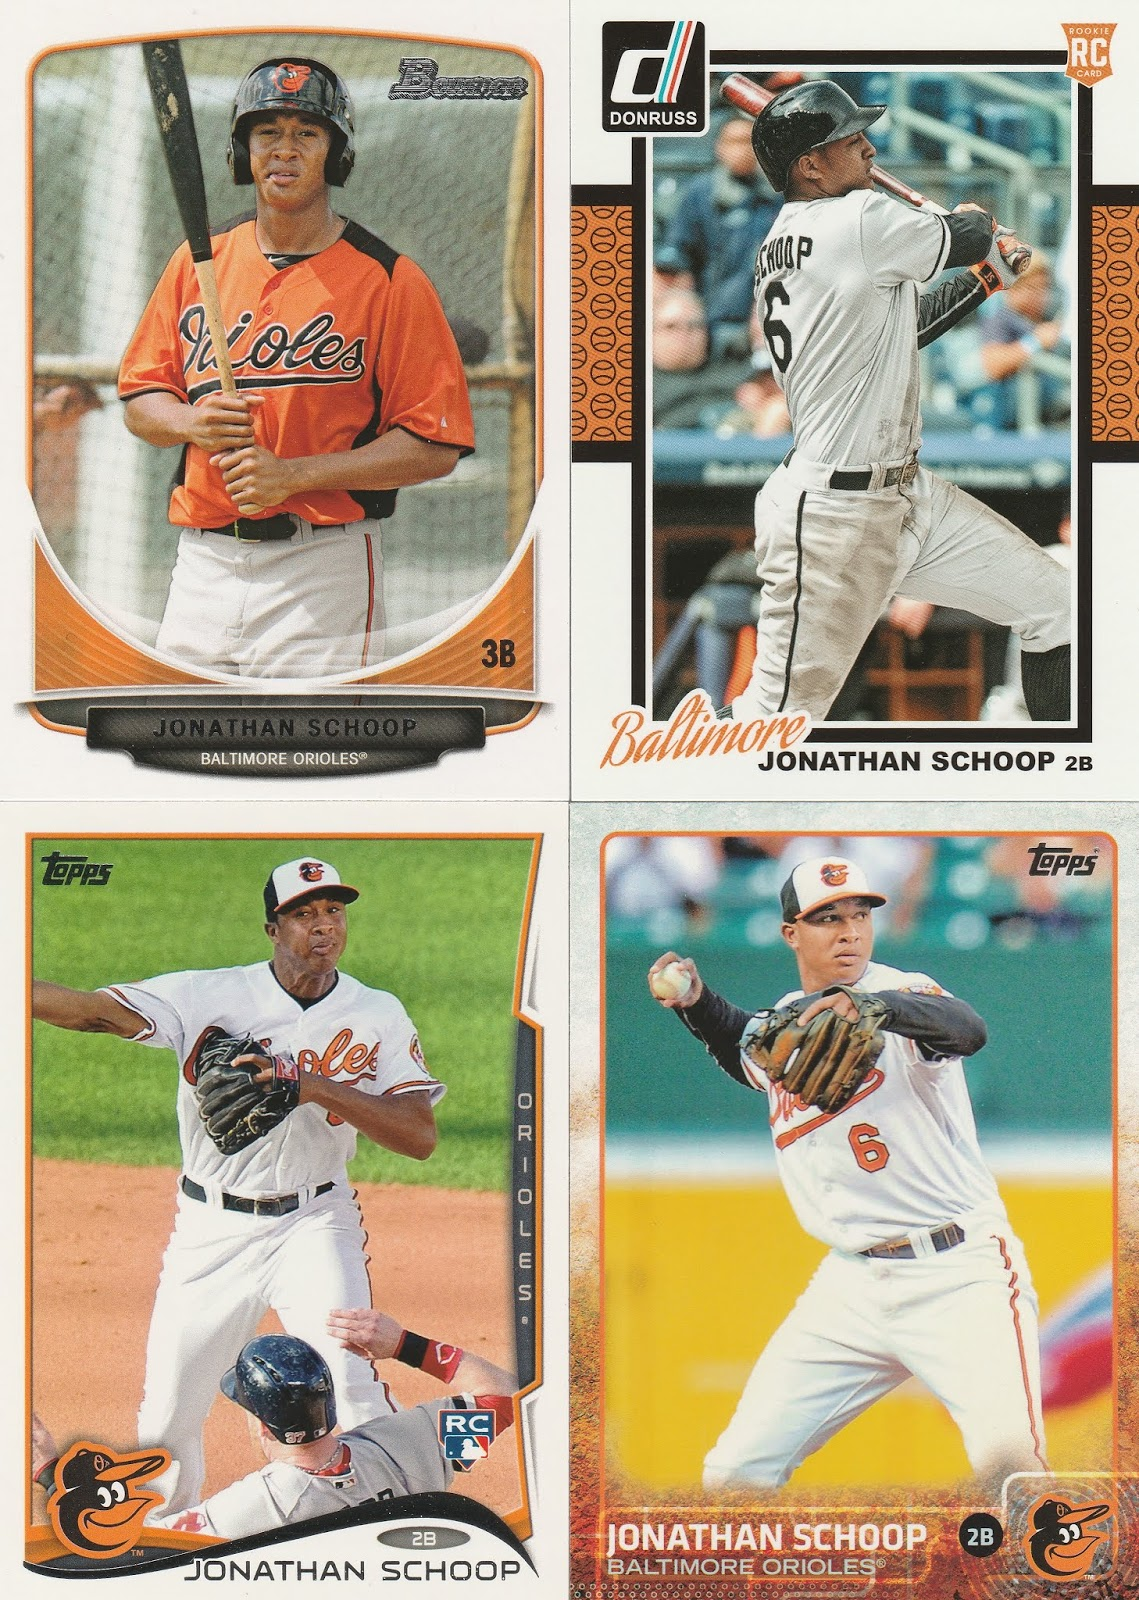 Schoop Was Signed As An Free Agent Way Back In 2008 A 16 Year Old It Took 5 Years The Orioles System To Work His Majors